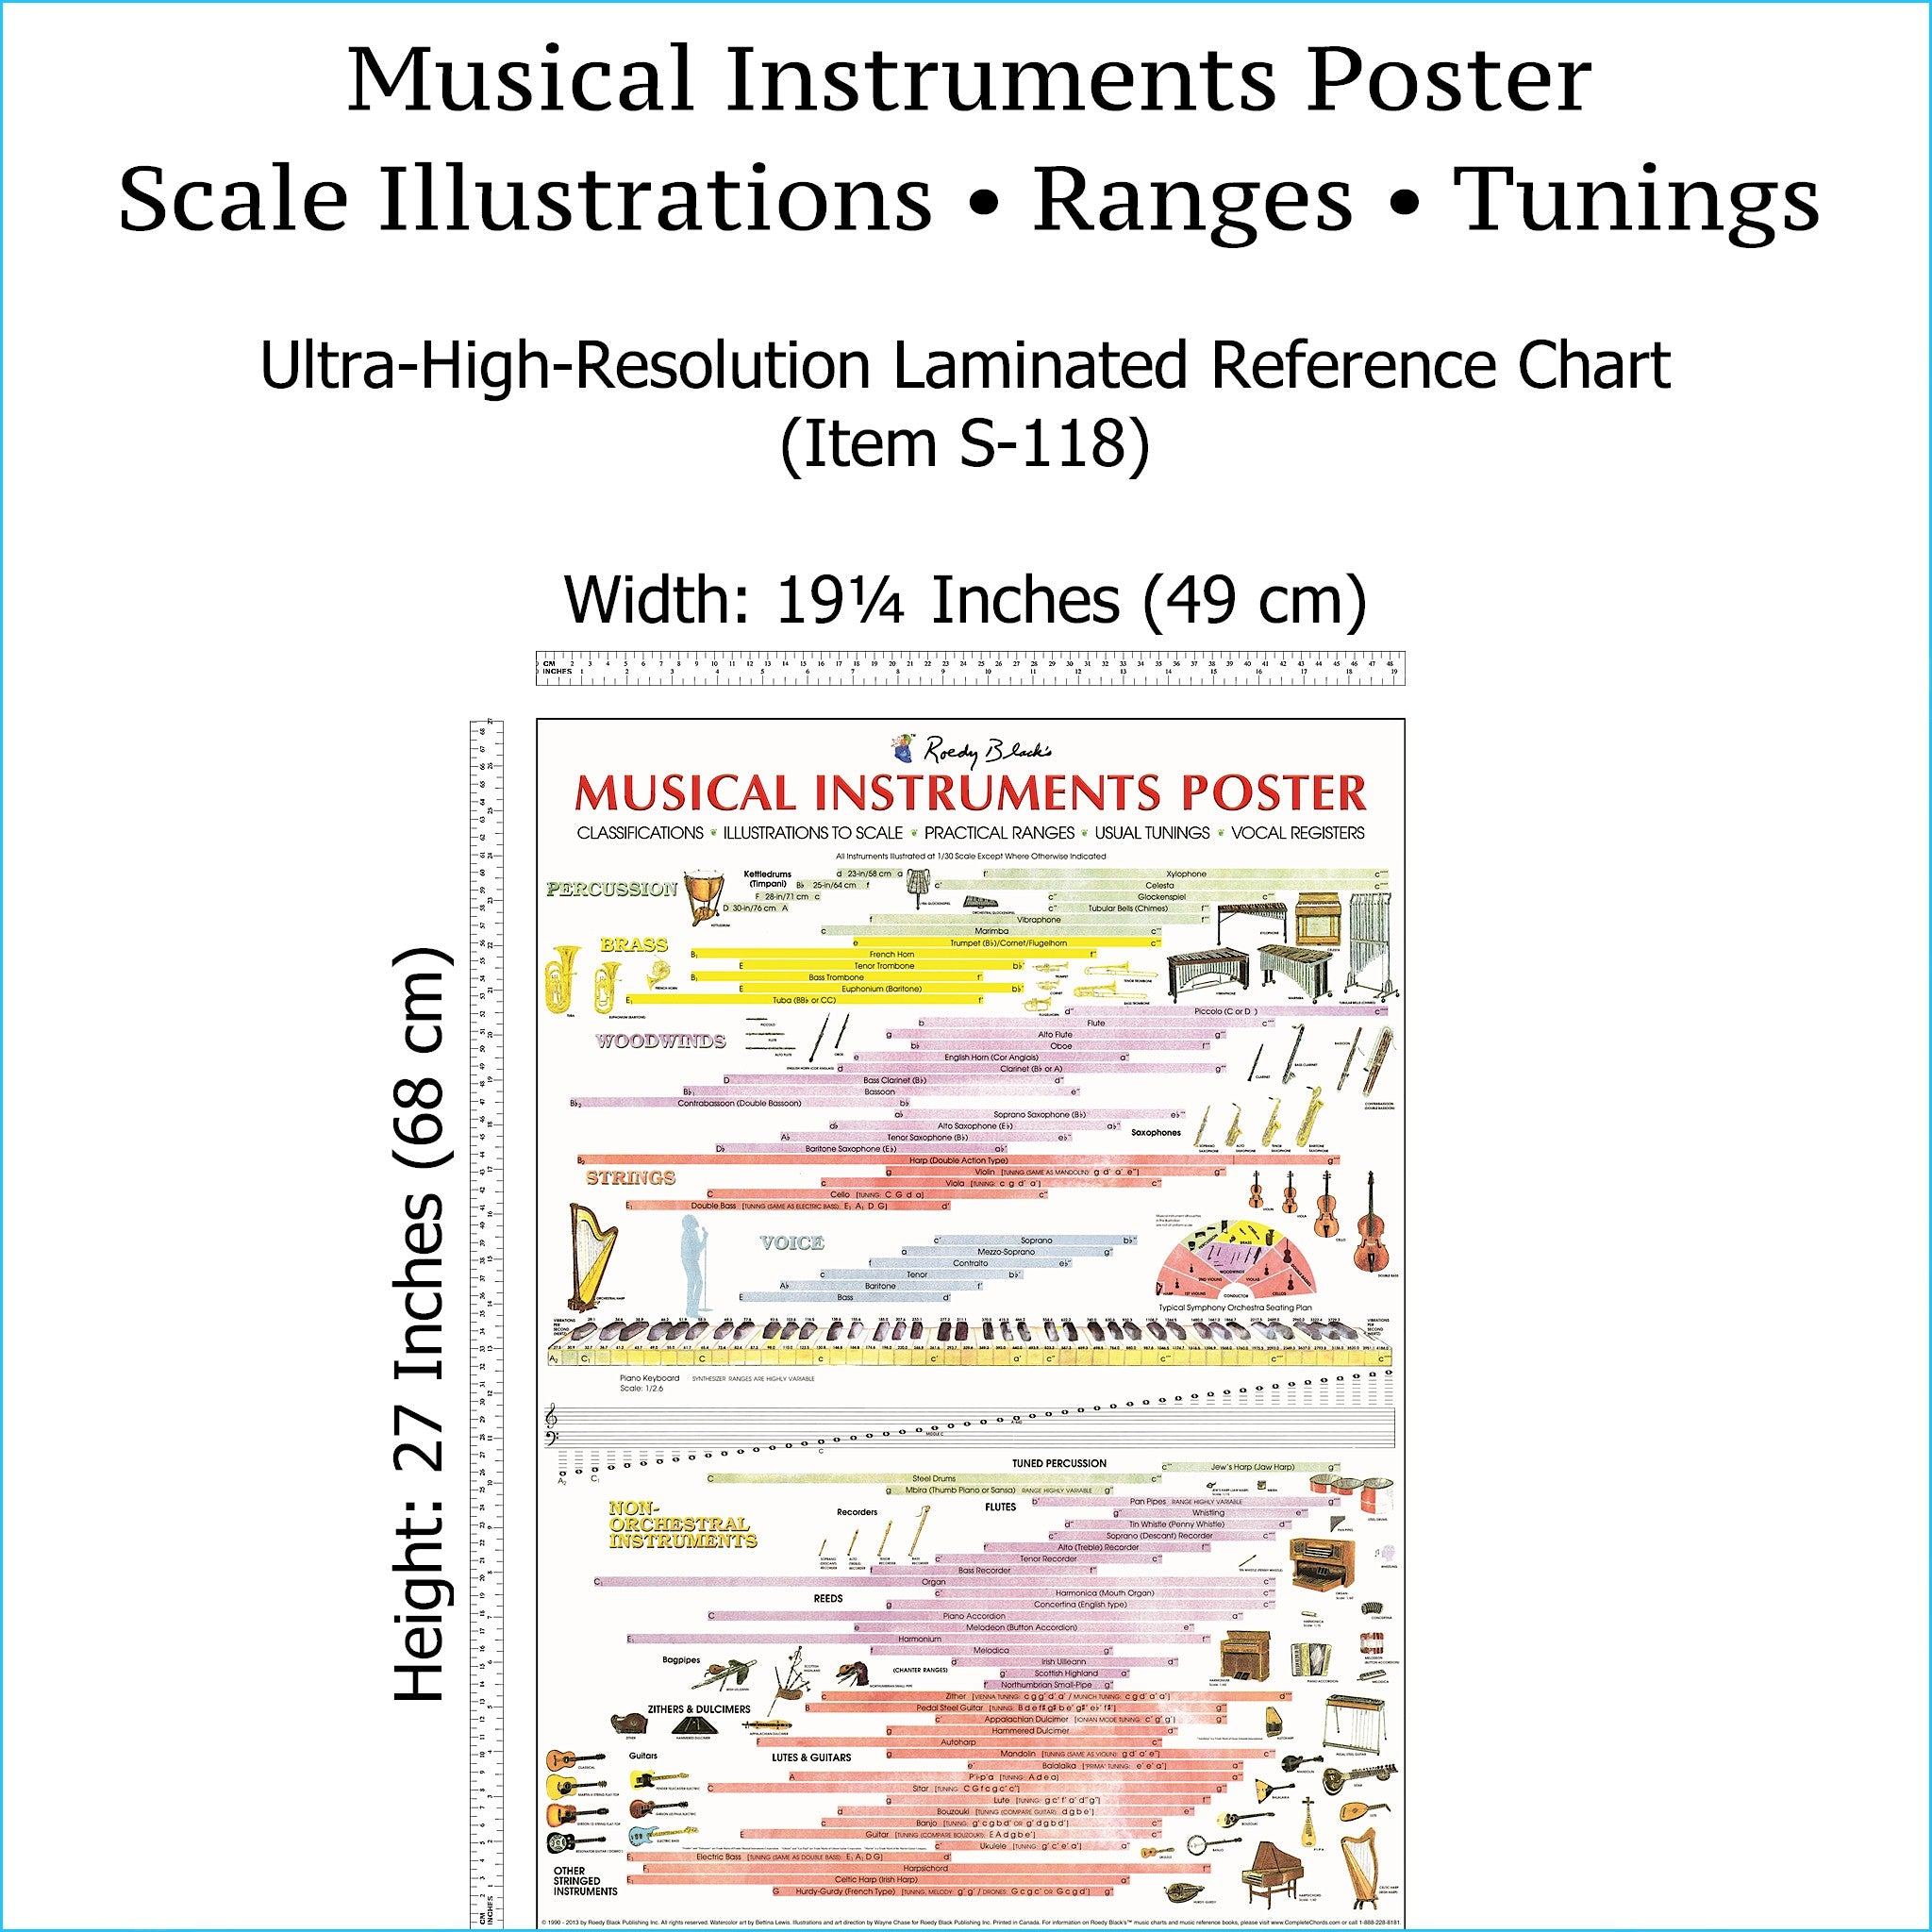 Full view of musical instruments poster.